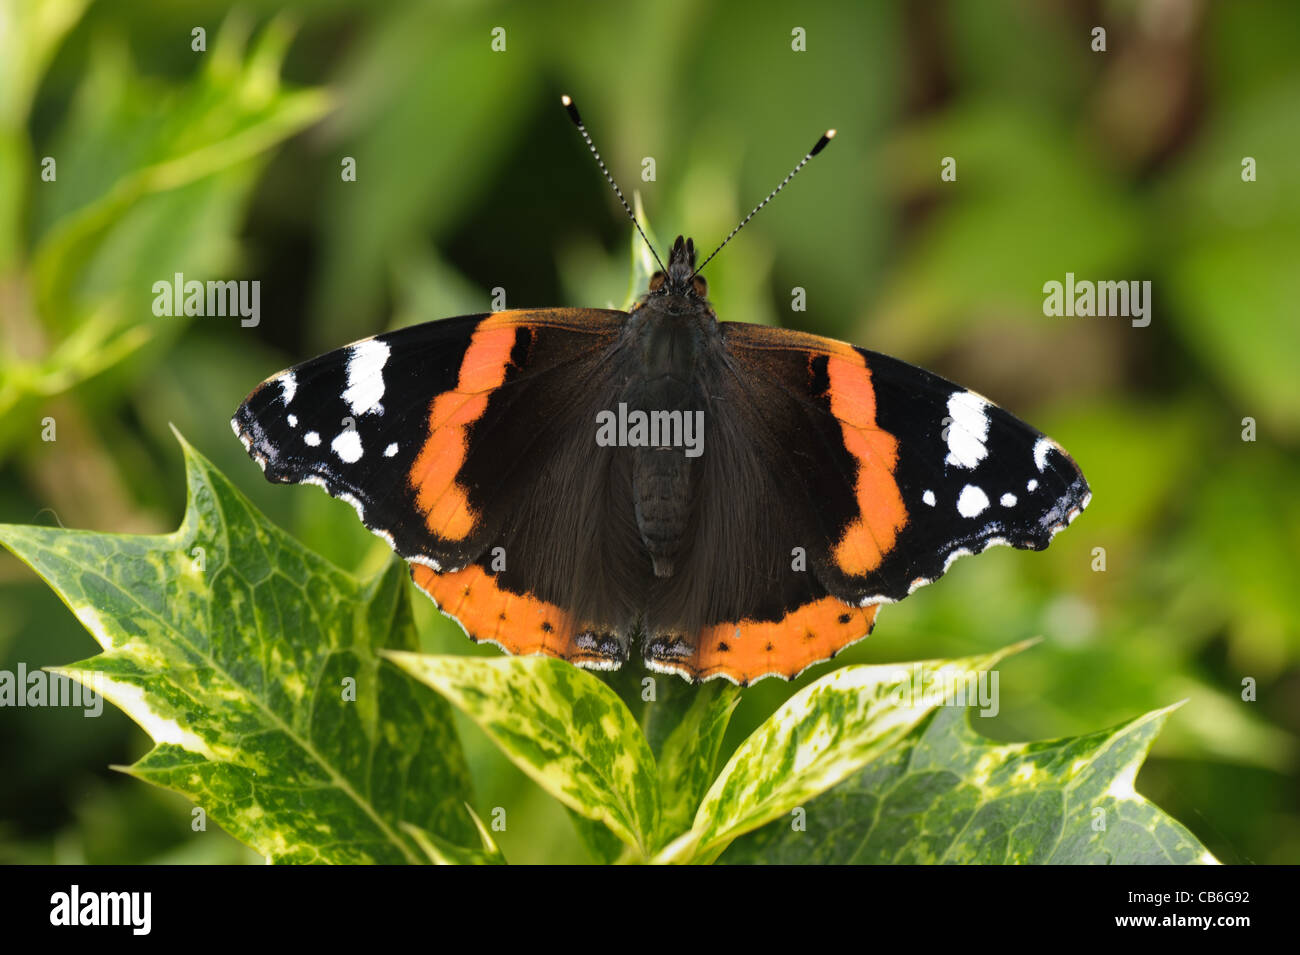 Red admiral (Vanessa atalanta) butterfly on a variegated holly leaf - Stock Image